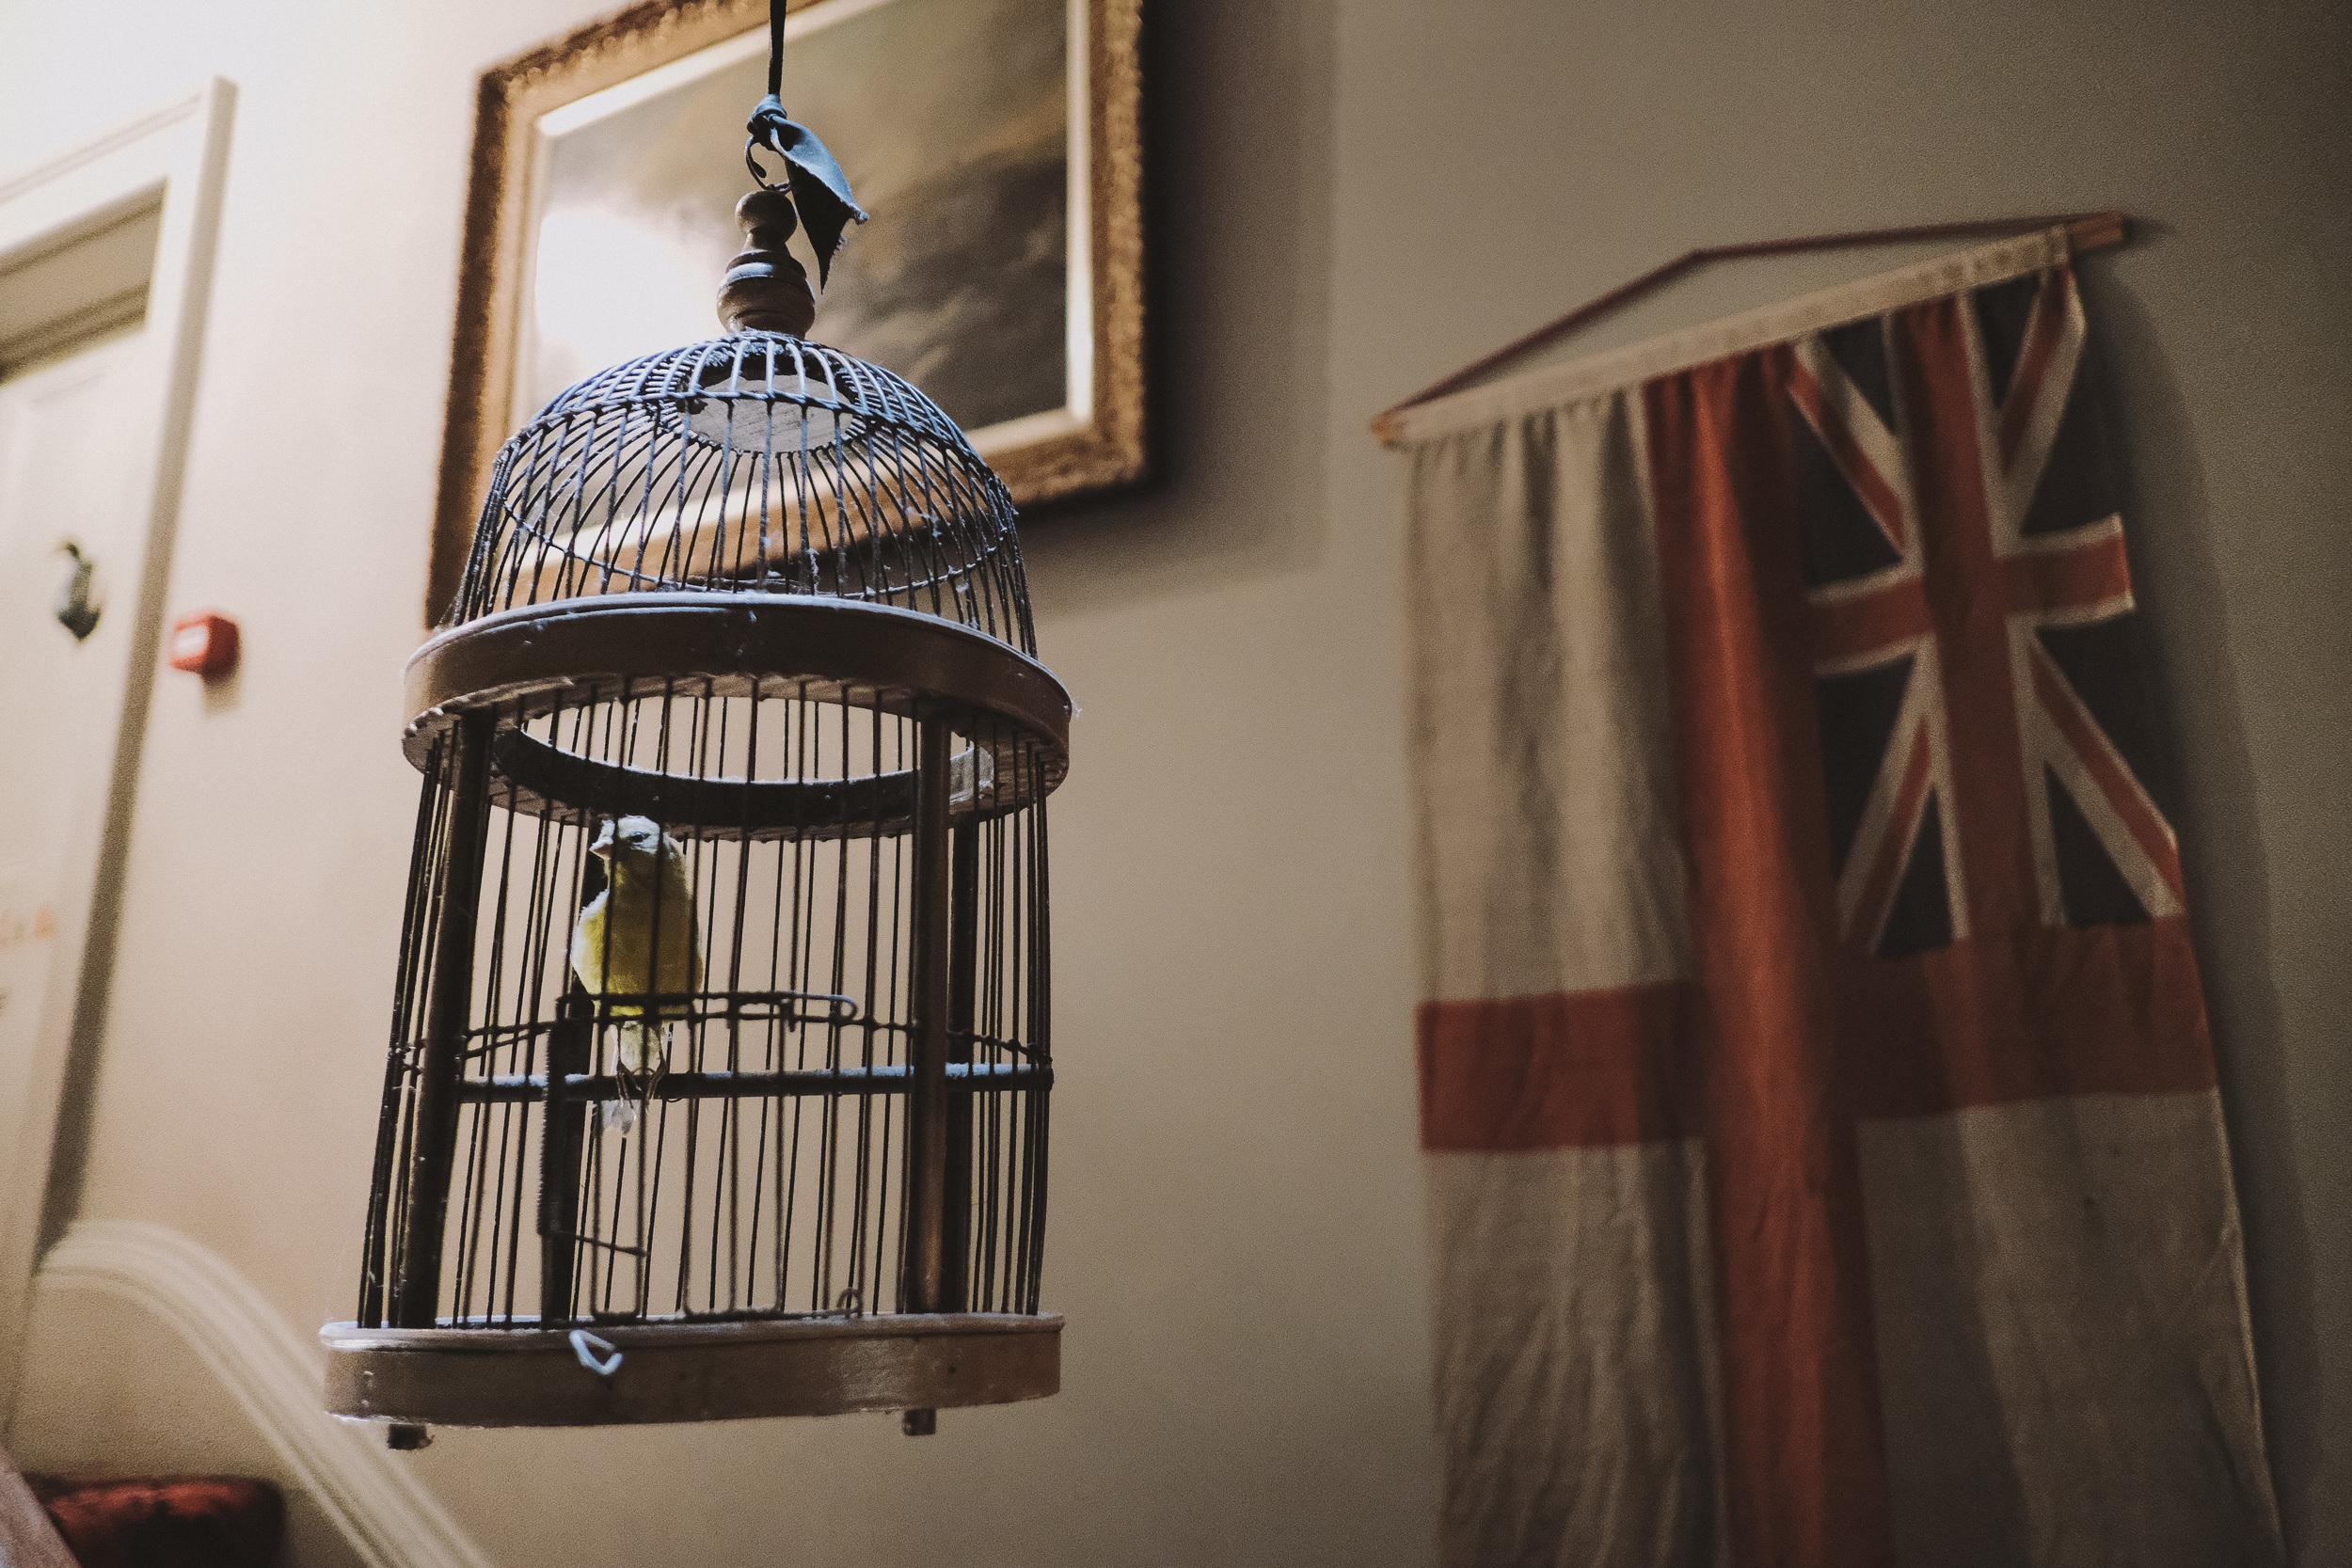 La Rosa Hotel Whitby // Birdcage and Flag // By Wedding Photographer Barry Forshaw